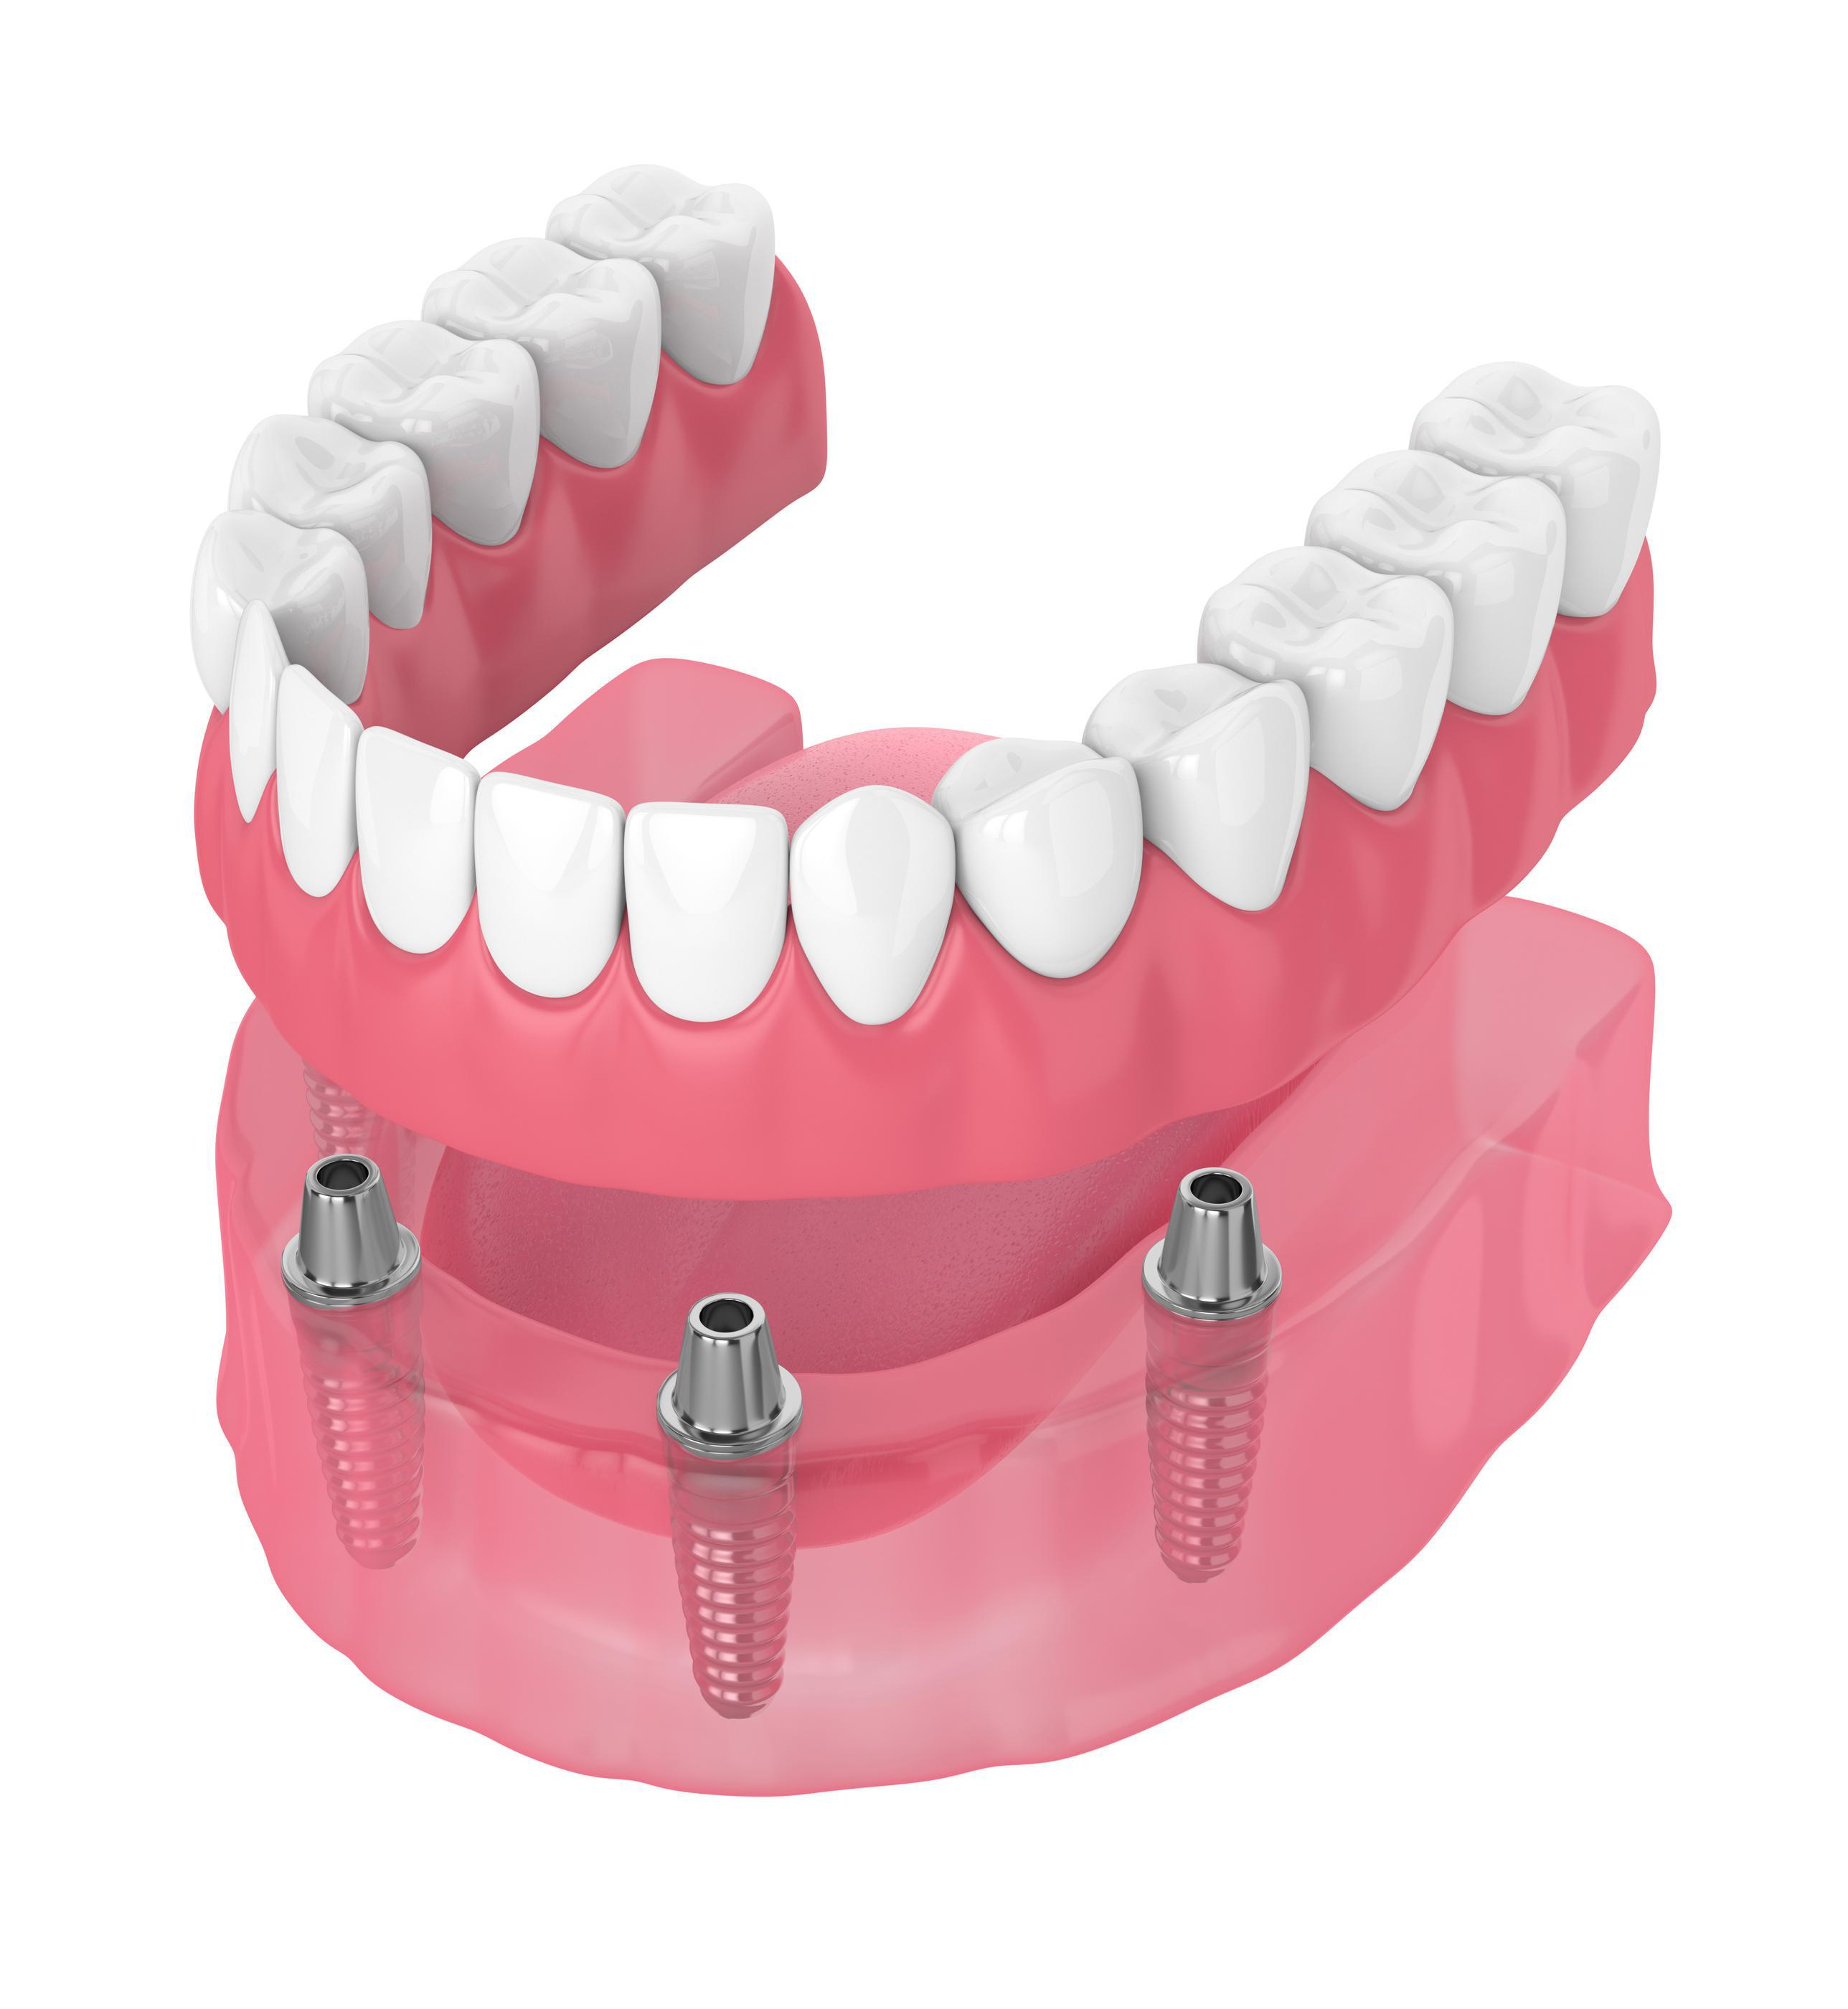 Full Arch Dental Implants in Mankato MN